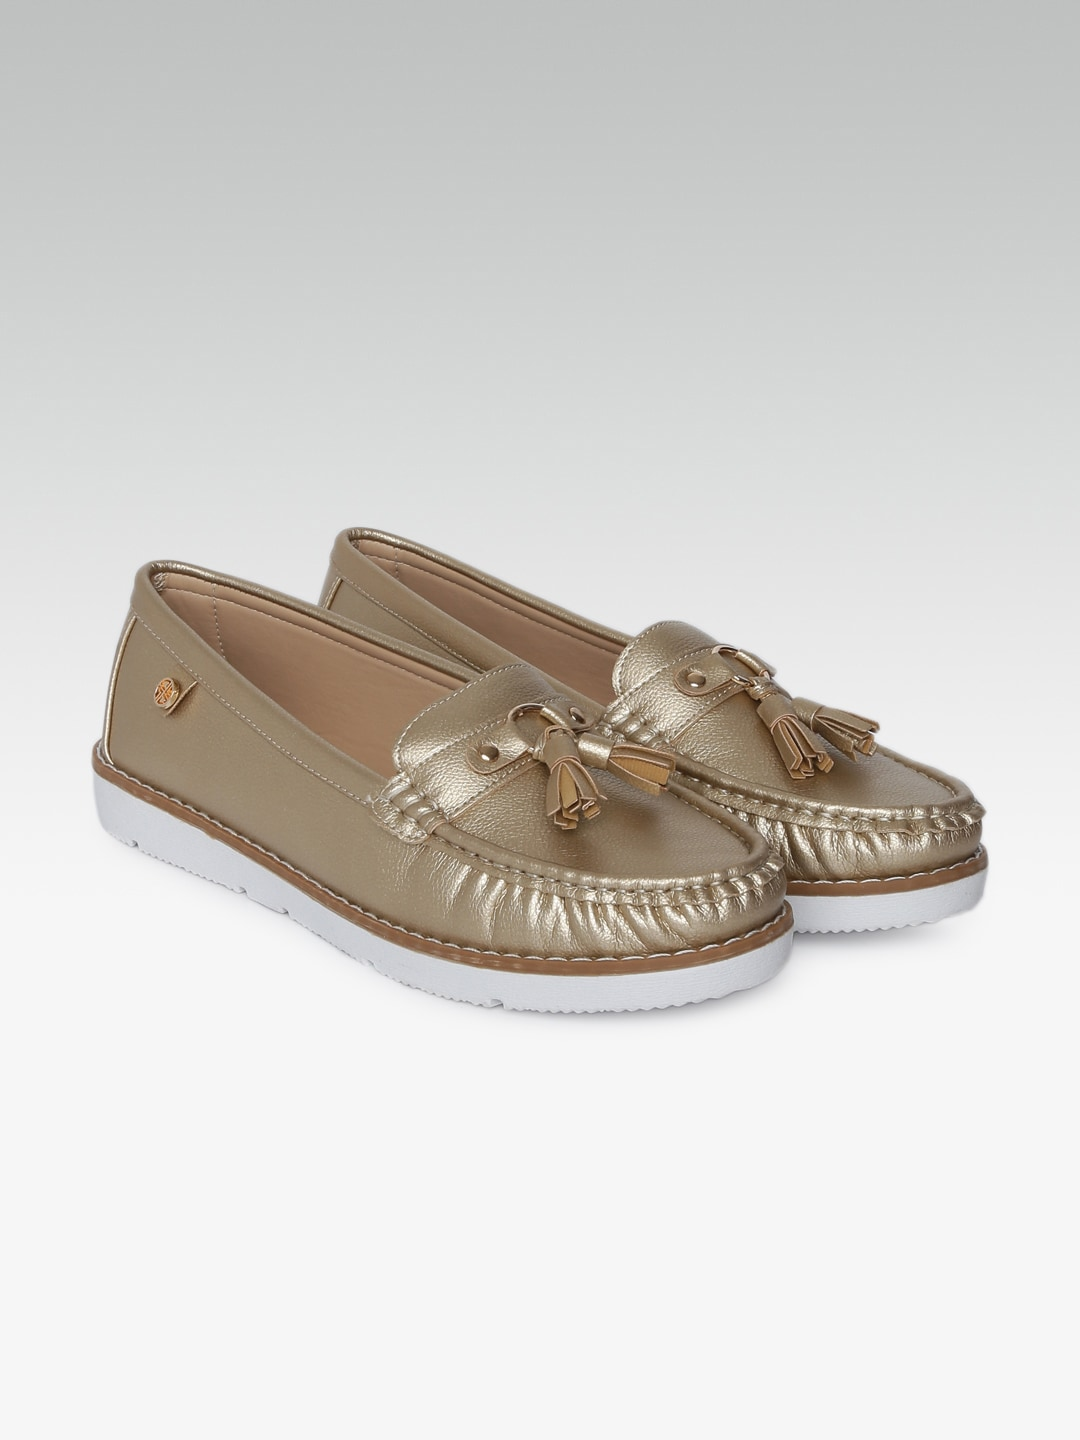 2e6769bbf51 Loafers for Women - Buy Ladies Loafers Online in India